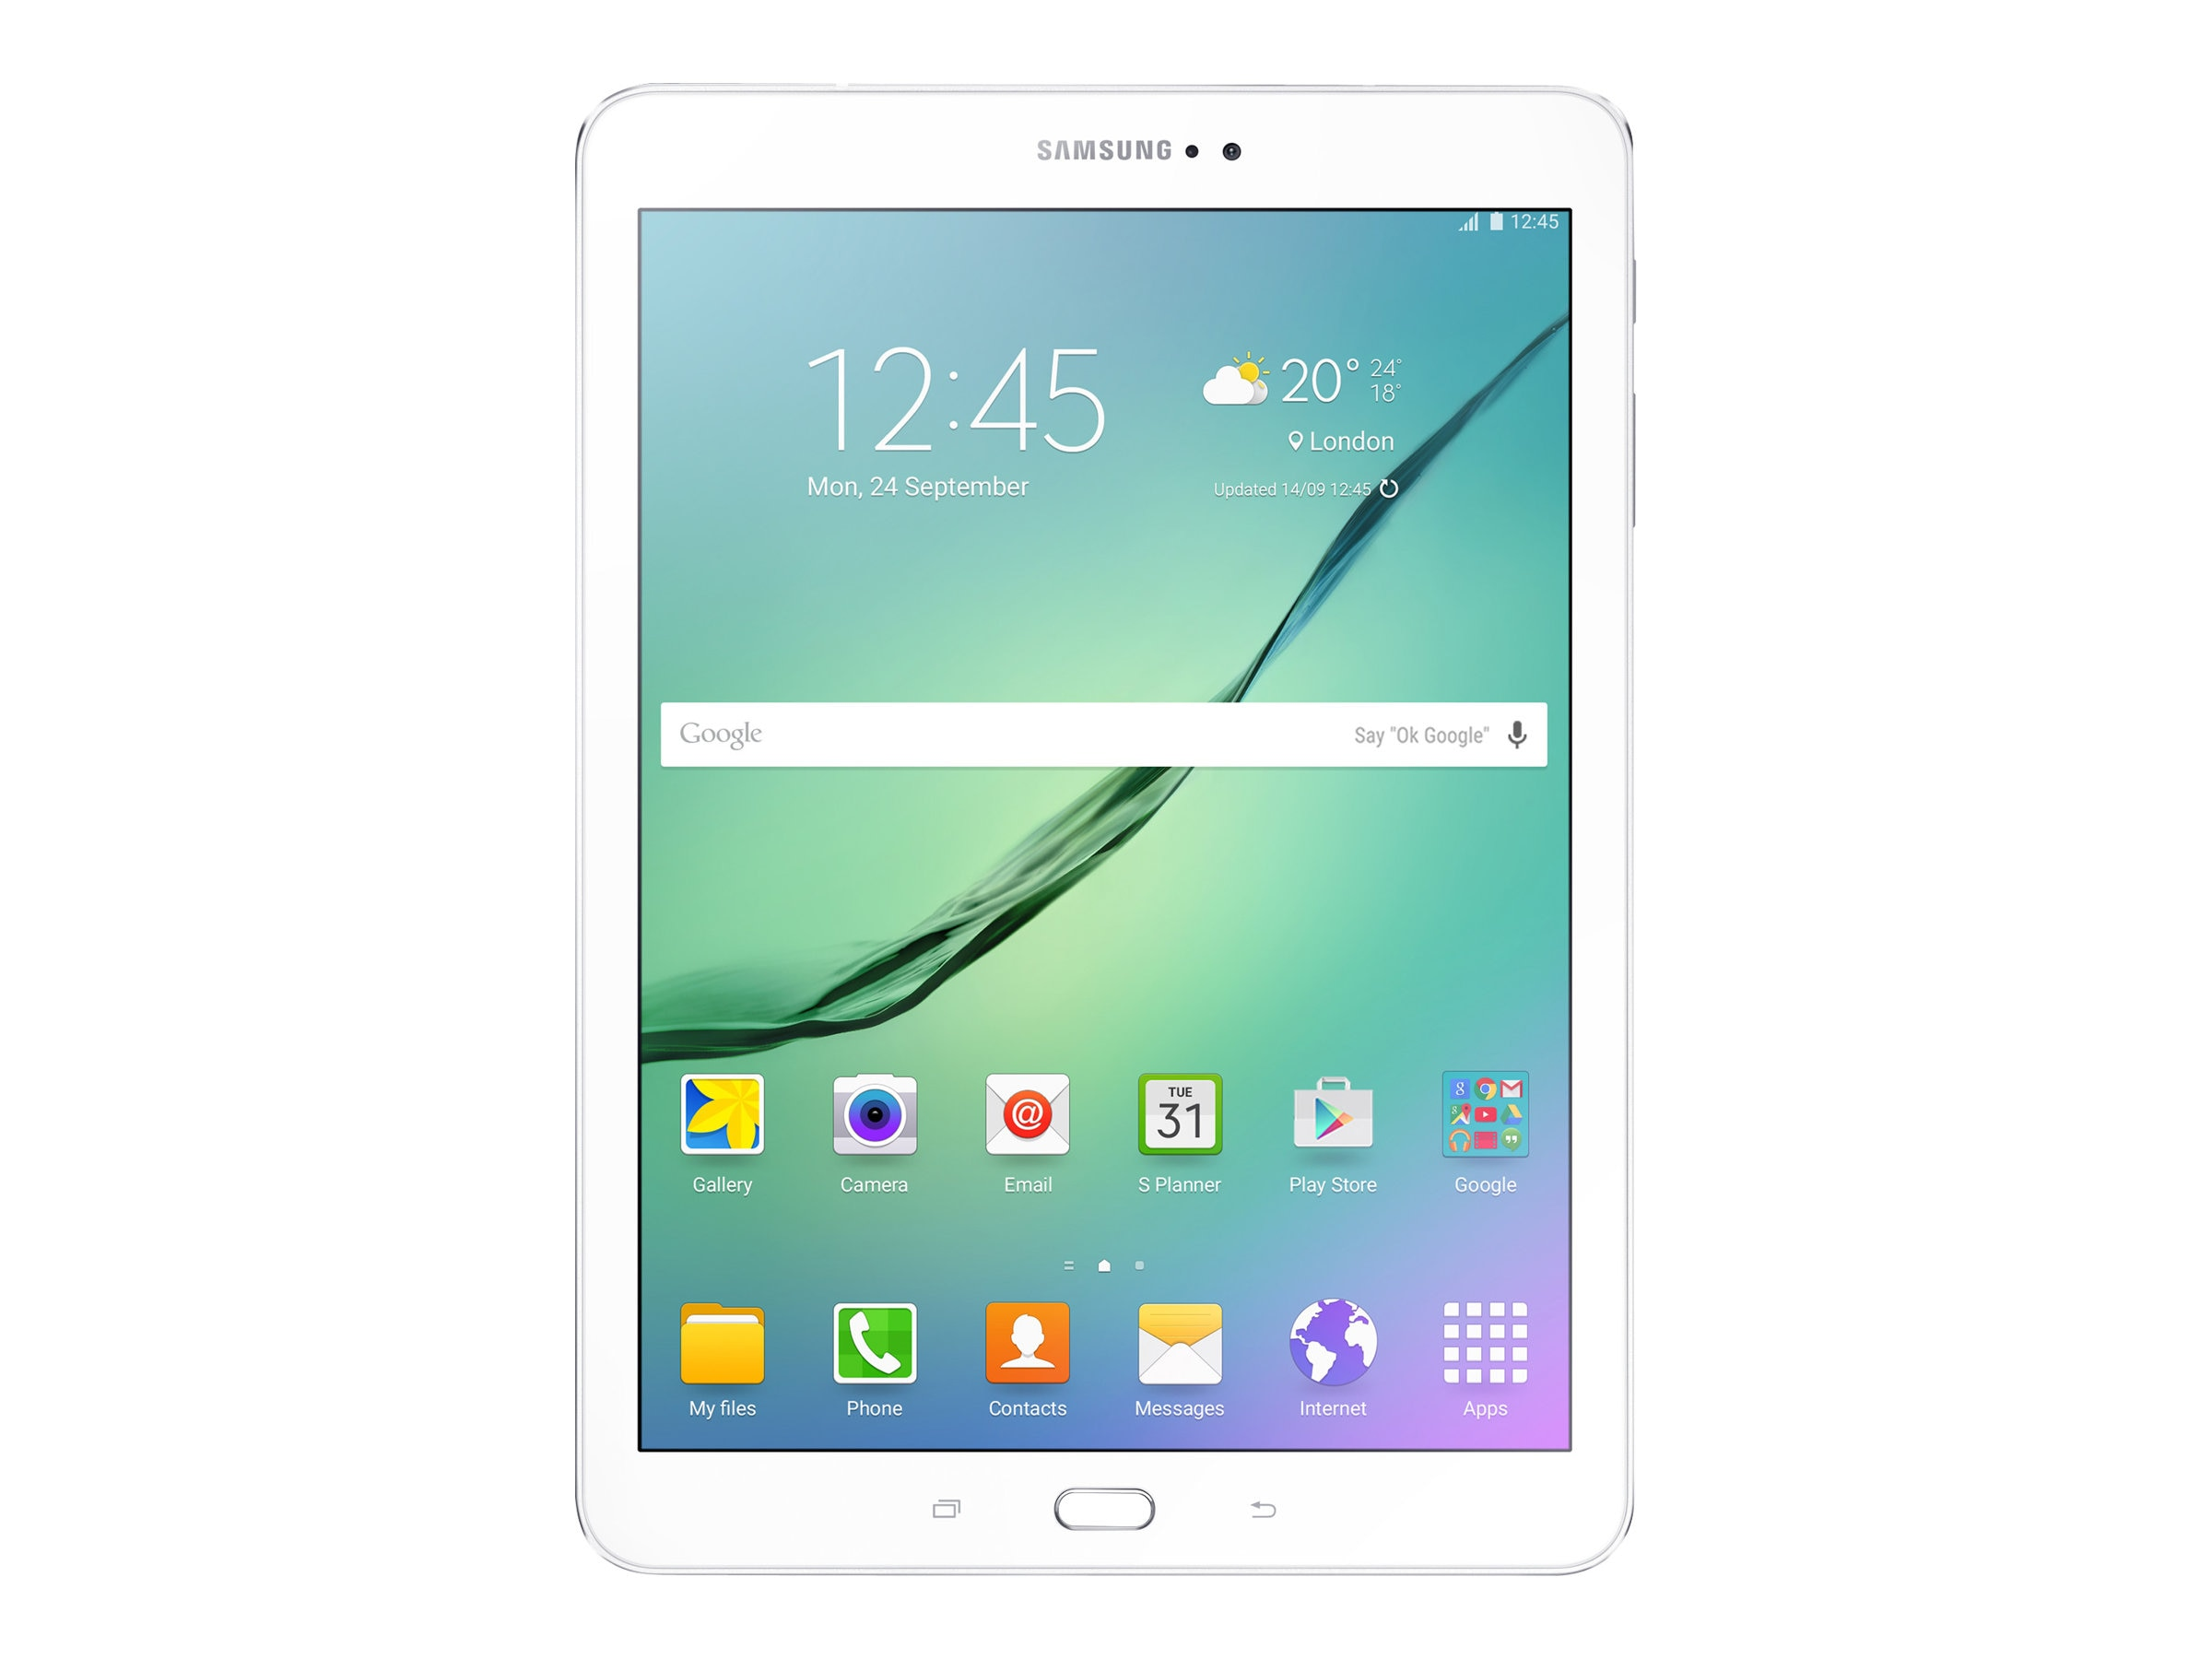 Samsung Galaxy Tab S2 32GB WiFi 9.7, White, SM-T810NZWEXAR, 27719146, Tablets